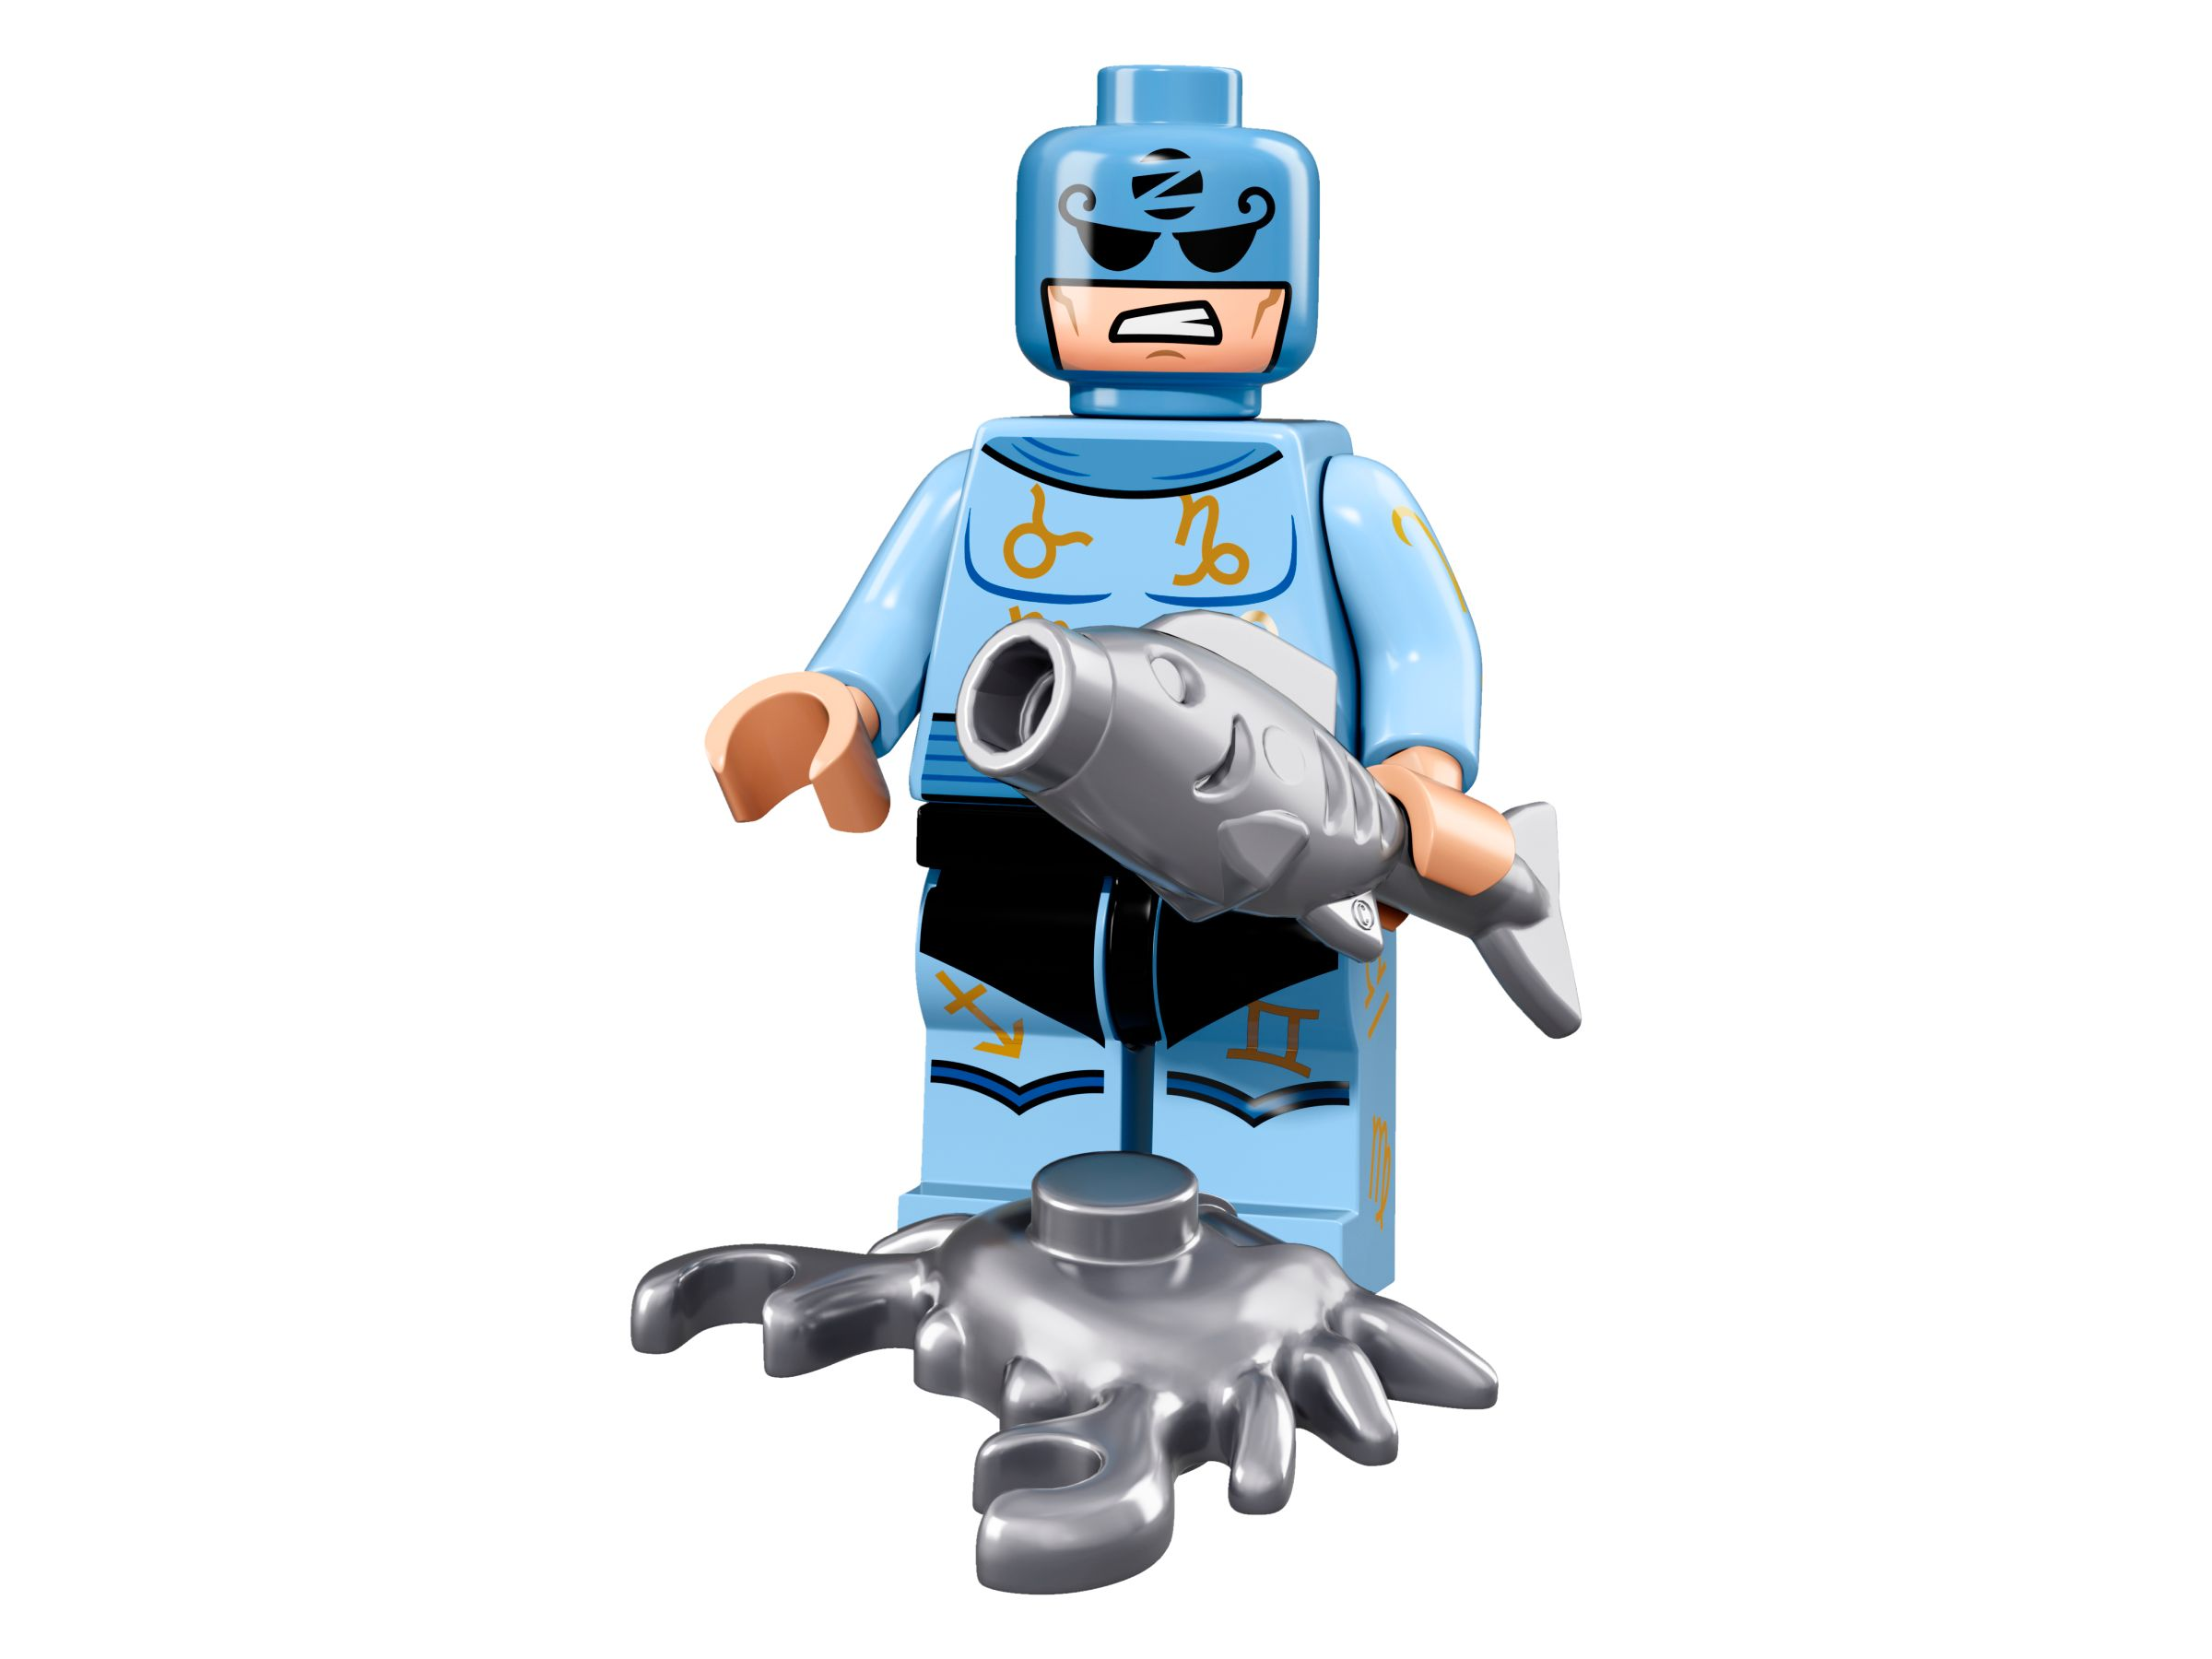 LEGO Collectable Minifigures 71017 LEGO® Batman Movie Minifiguren Serie LEGO_71017_alt2.jpg